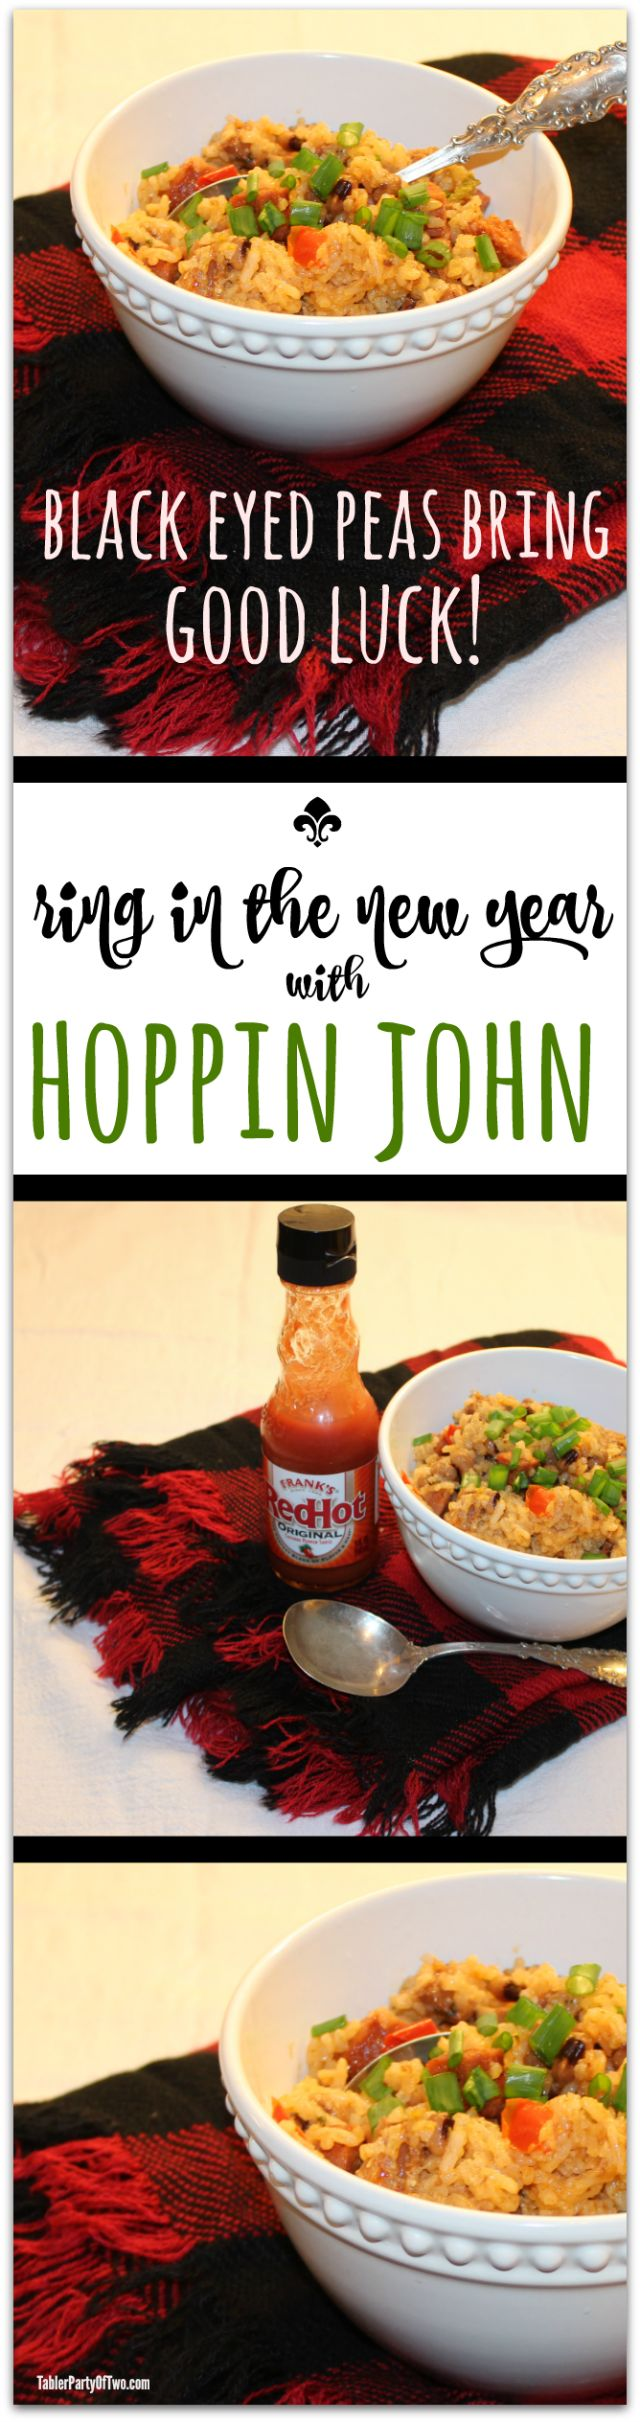 Ring in the New Year with Lucky Hoppin John with black eyed peas and more! This easy to make recipe is a crowd pleaser... absolutely delish! TablerPartyofTwo.com